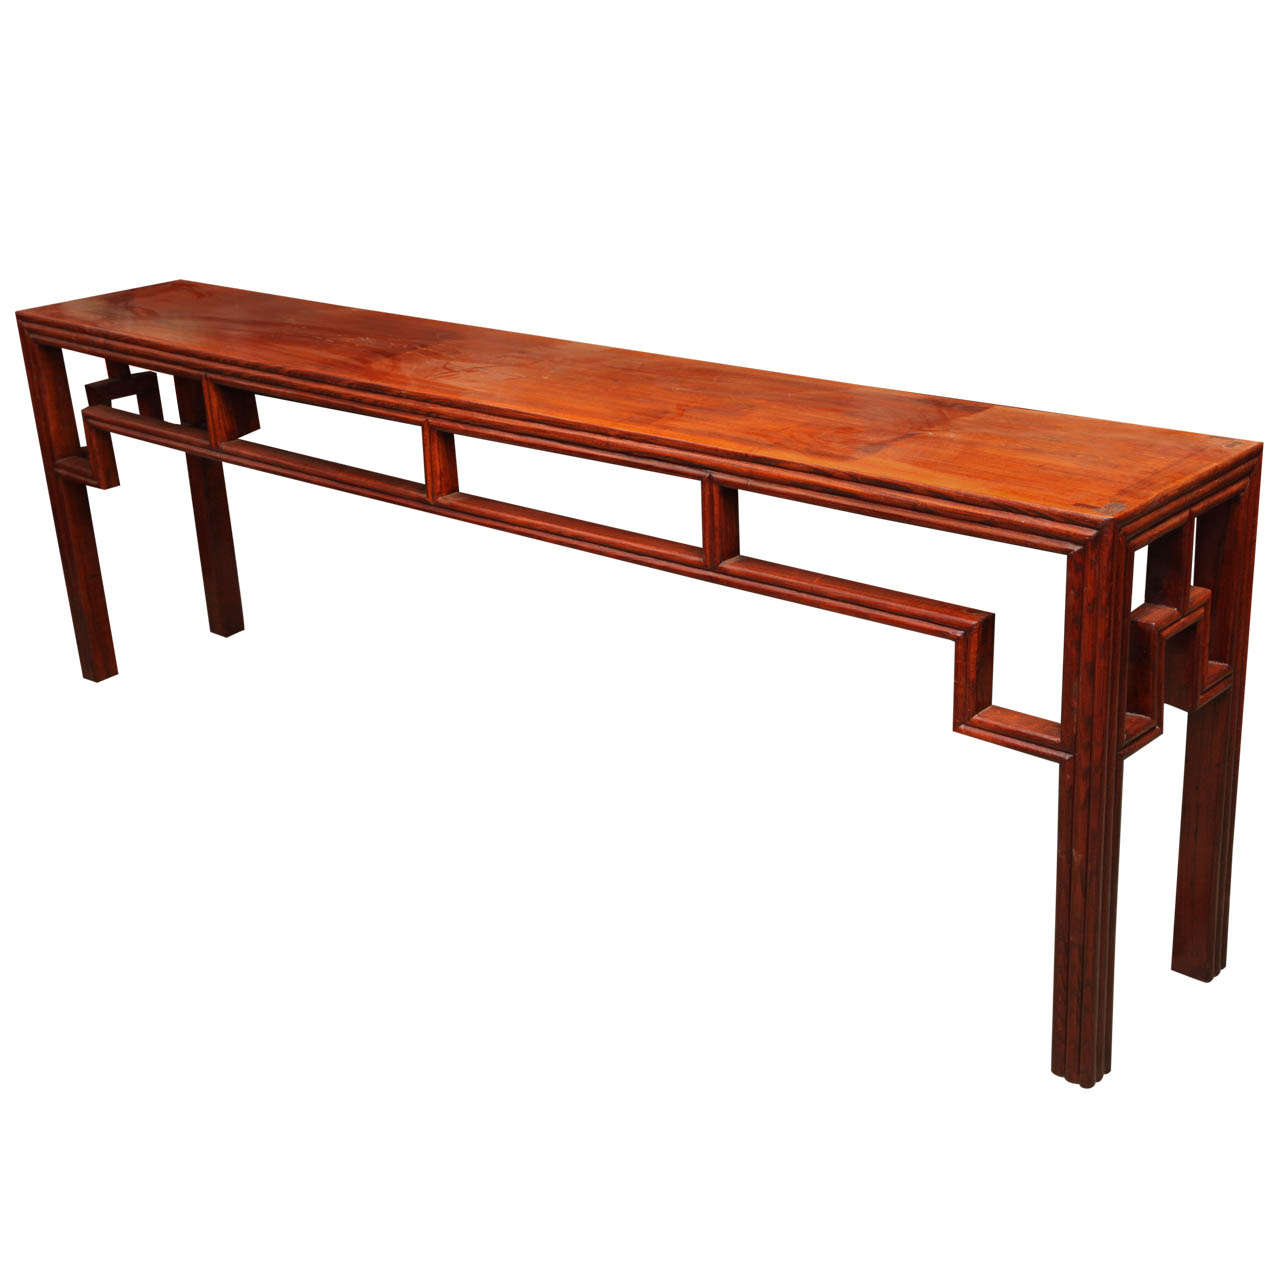 Unusual long antique elm wood console table for sale at for Unusual tables for sale